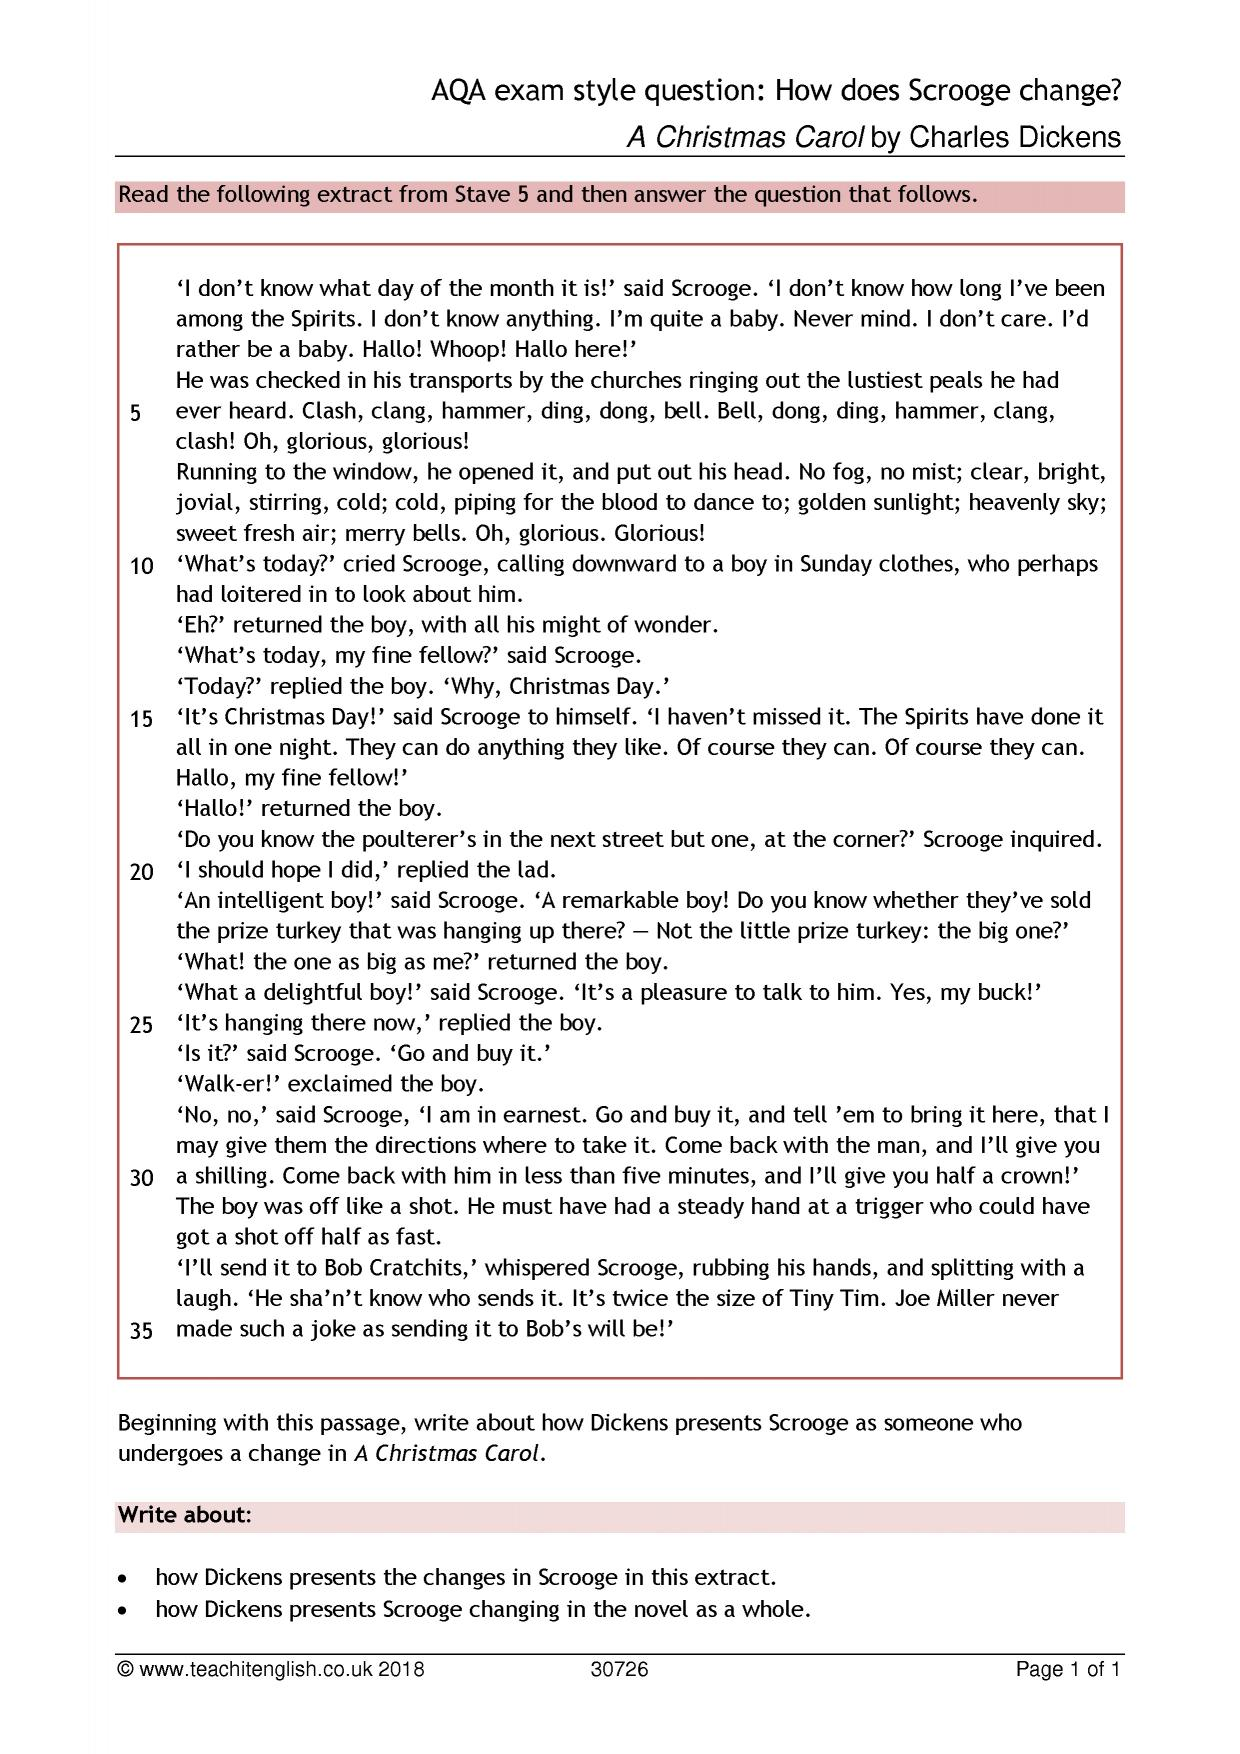 A Christmas Carol Quiz Questions And Answers.A Christmas Carol By Charles Dickens Teachit English